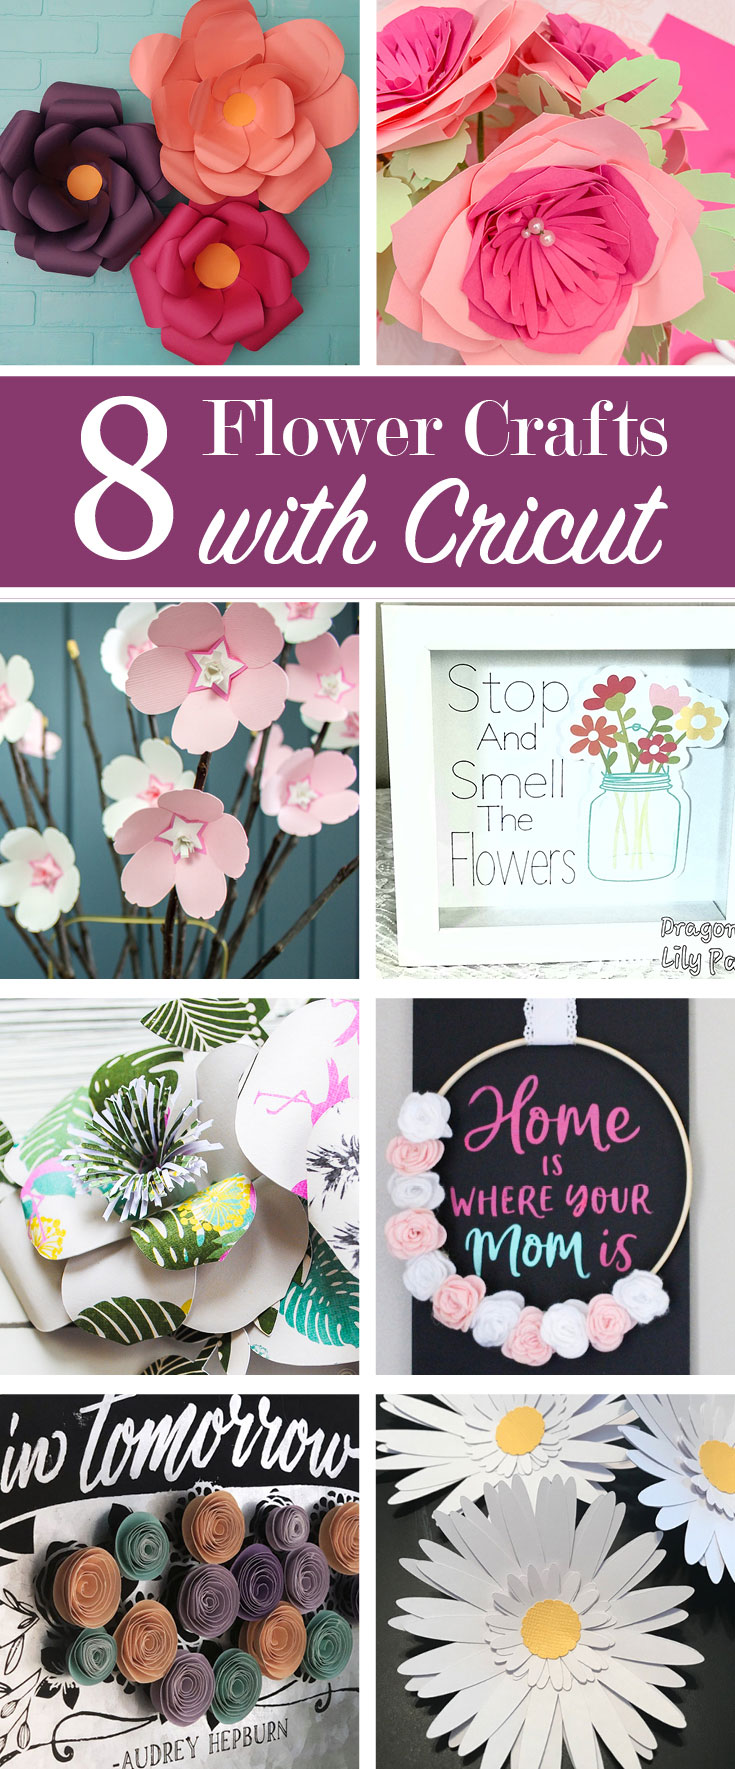 Flowers made with Cricut